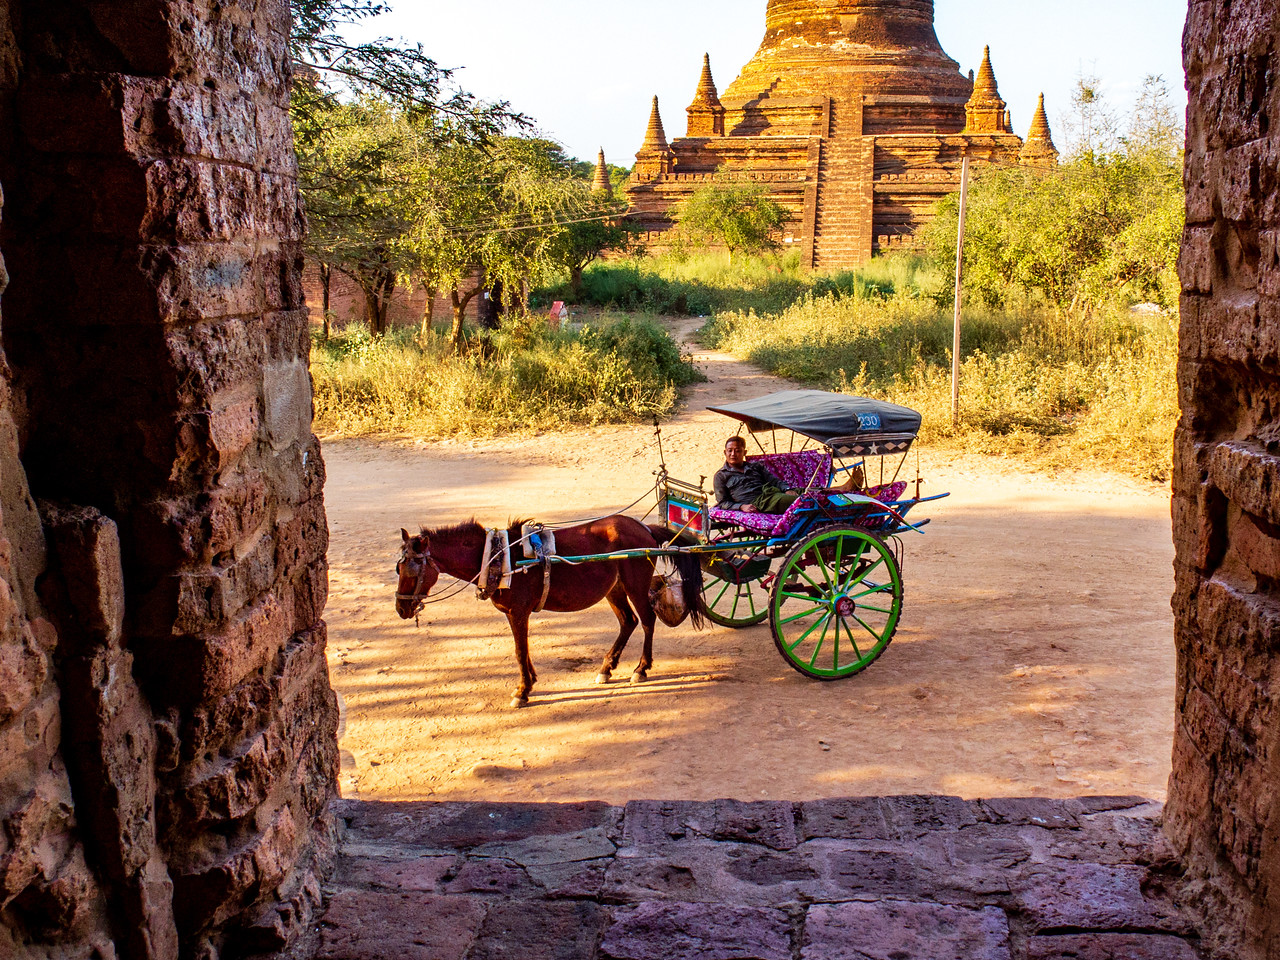 We took a Horse and Buggy to Visit the Temples of Bagan